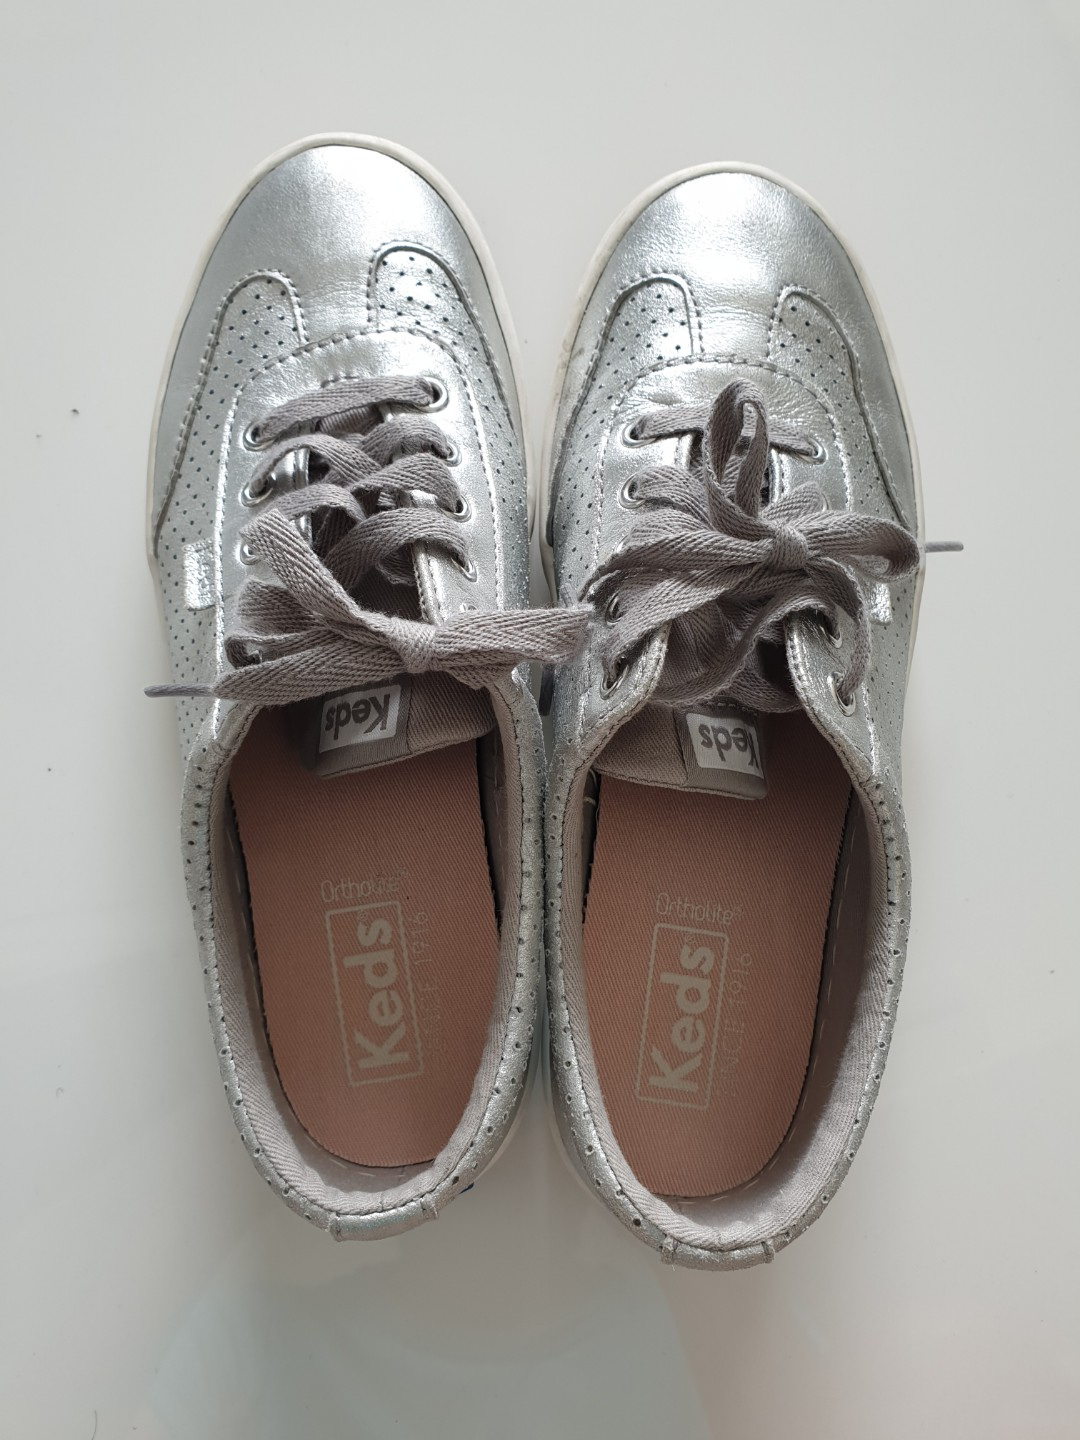 f9337e121 Keds Ortholite Shoes, Women's Fashion, Shoes, Sneakers on Carousell